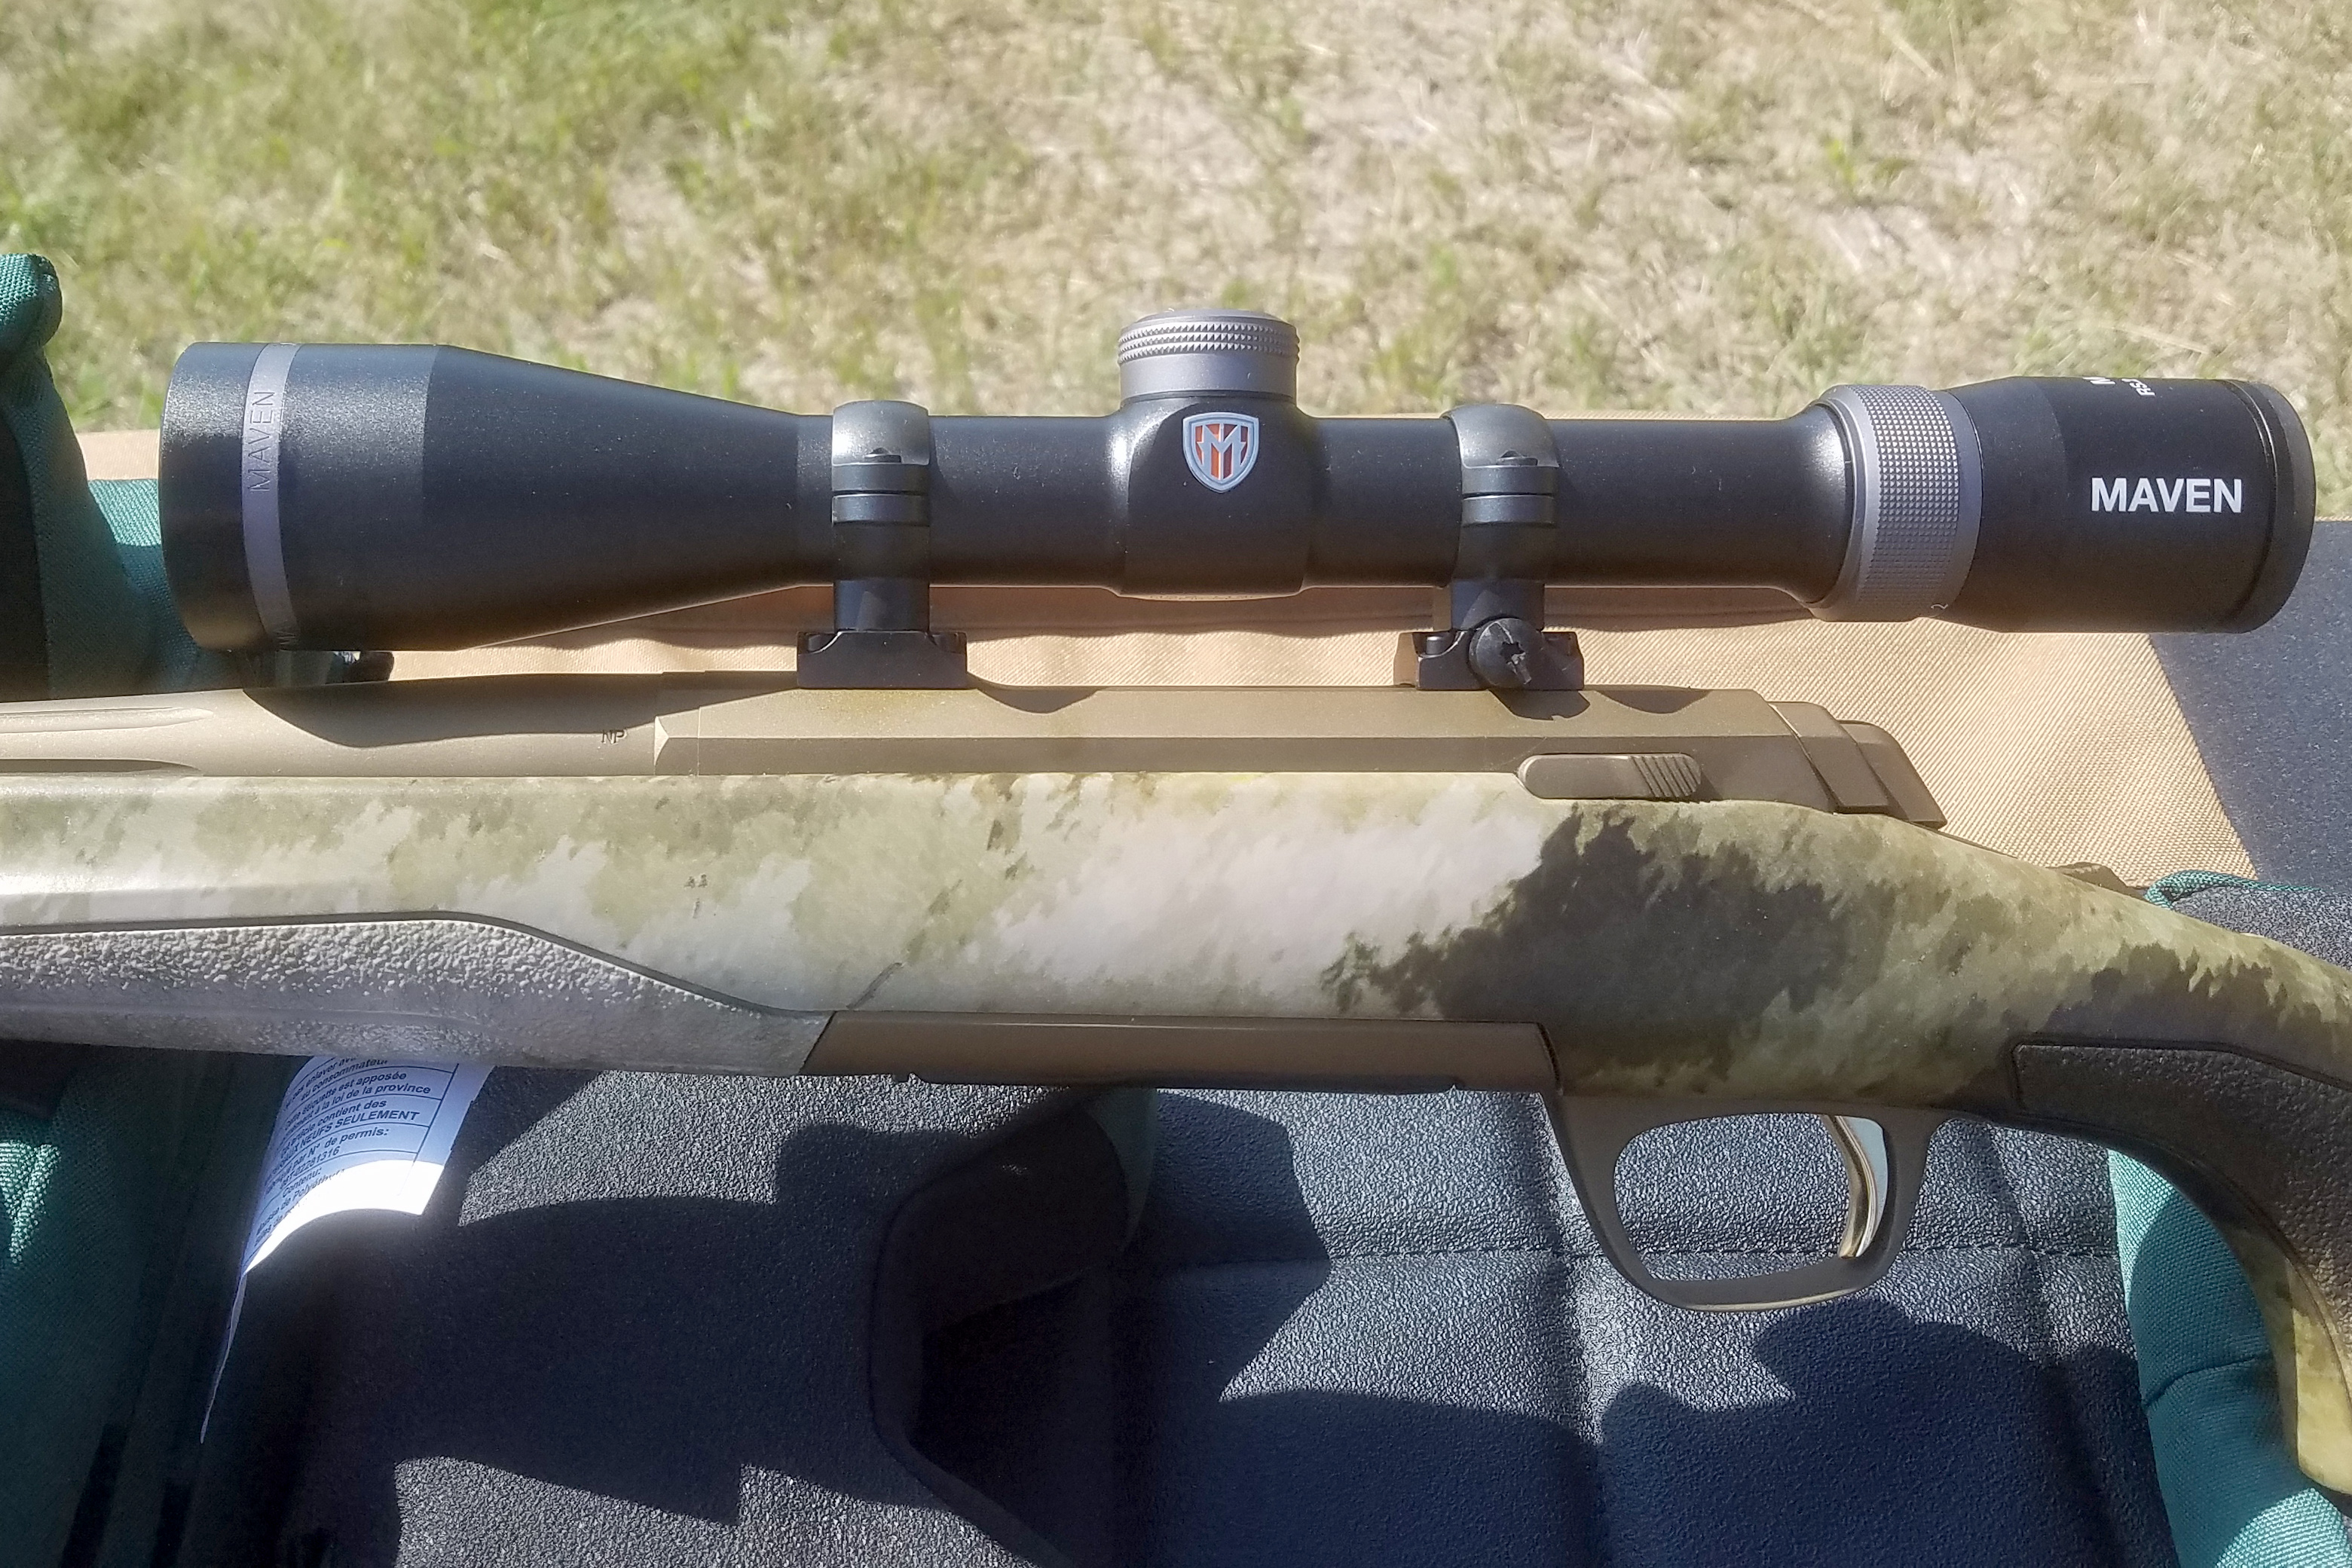 Maven RS 2 Lightweight Riflescope Review: Tested on the